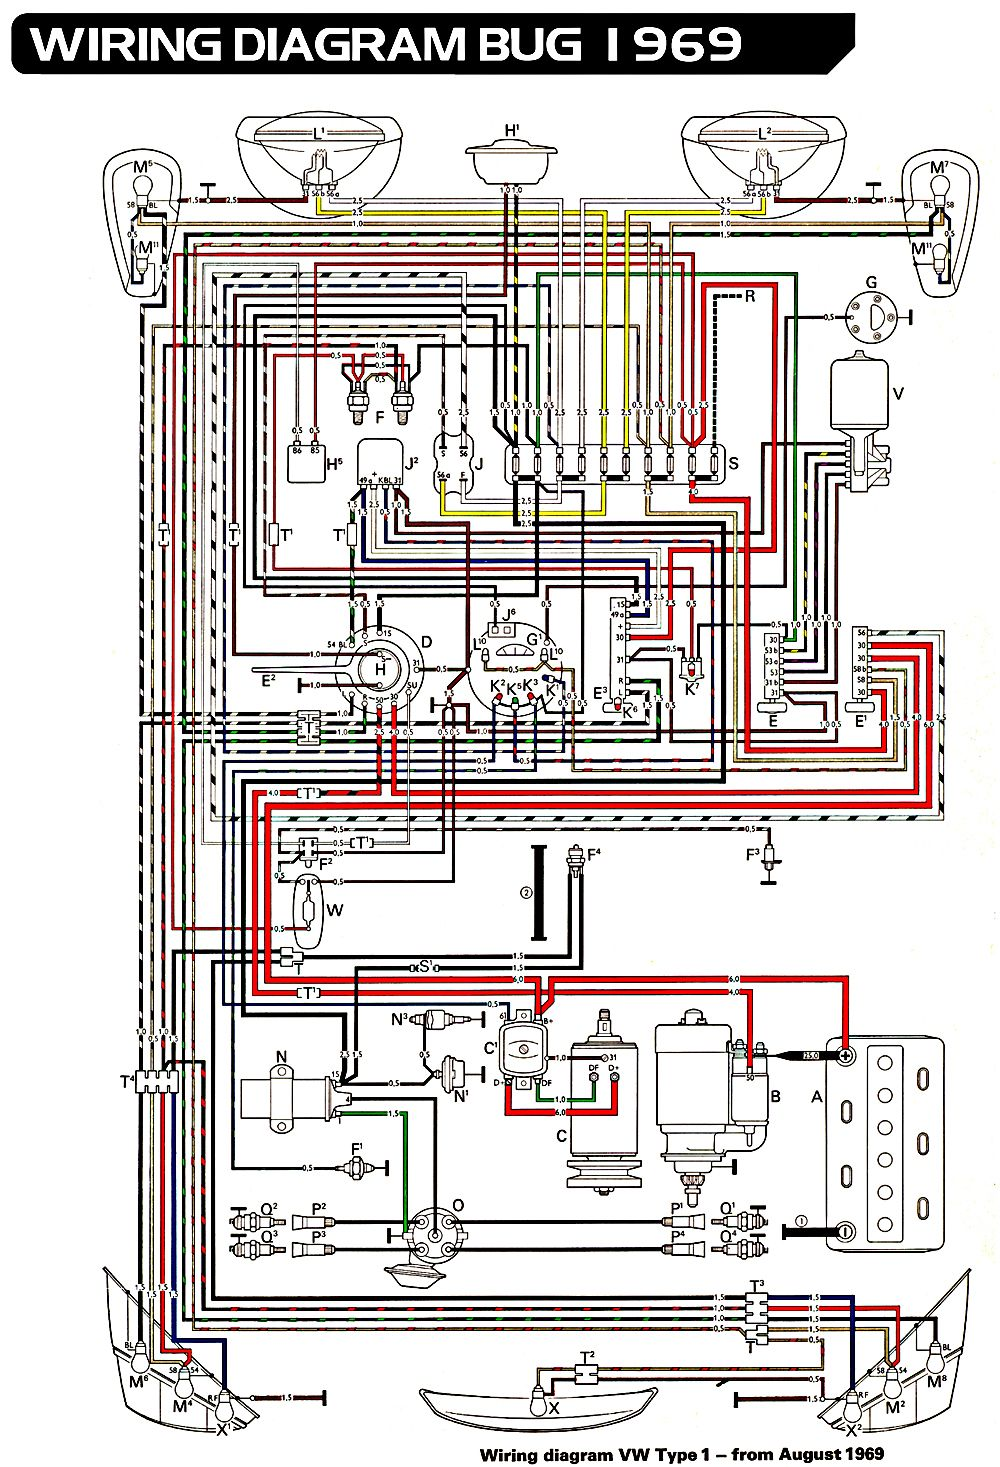 1960 Triumph Tr3 Wiring Diagram Free Picture | Wiring Liry on porsche 914 wiring, triumph gt6 alternator wiring, jeep cherokee wiring, triumph spitfire wiring, triumph stag wiring, triumph tr4 wiring, mg midget wiring, triumph tr6 wiring, ford mustang wiring, ford pinto wiring, dodge dakota wiring, triumph scrambler wiring, triumph tr25 wiring, tr6 dashboard wiring,